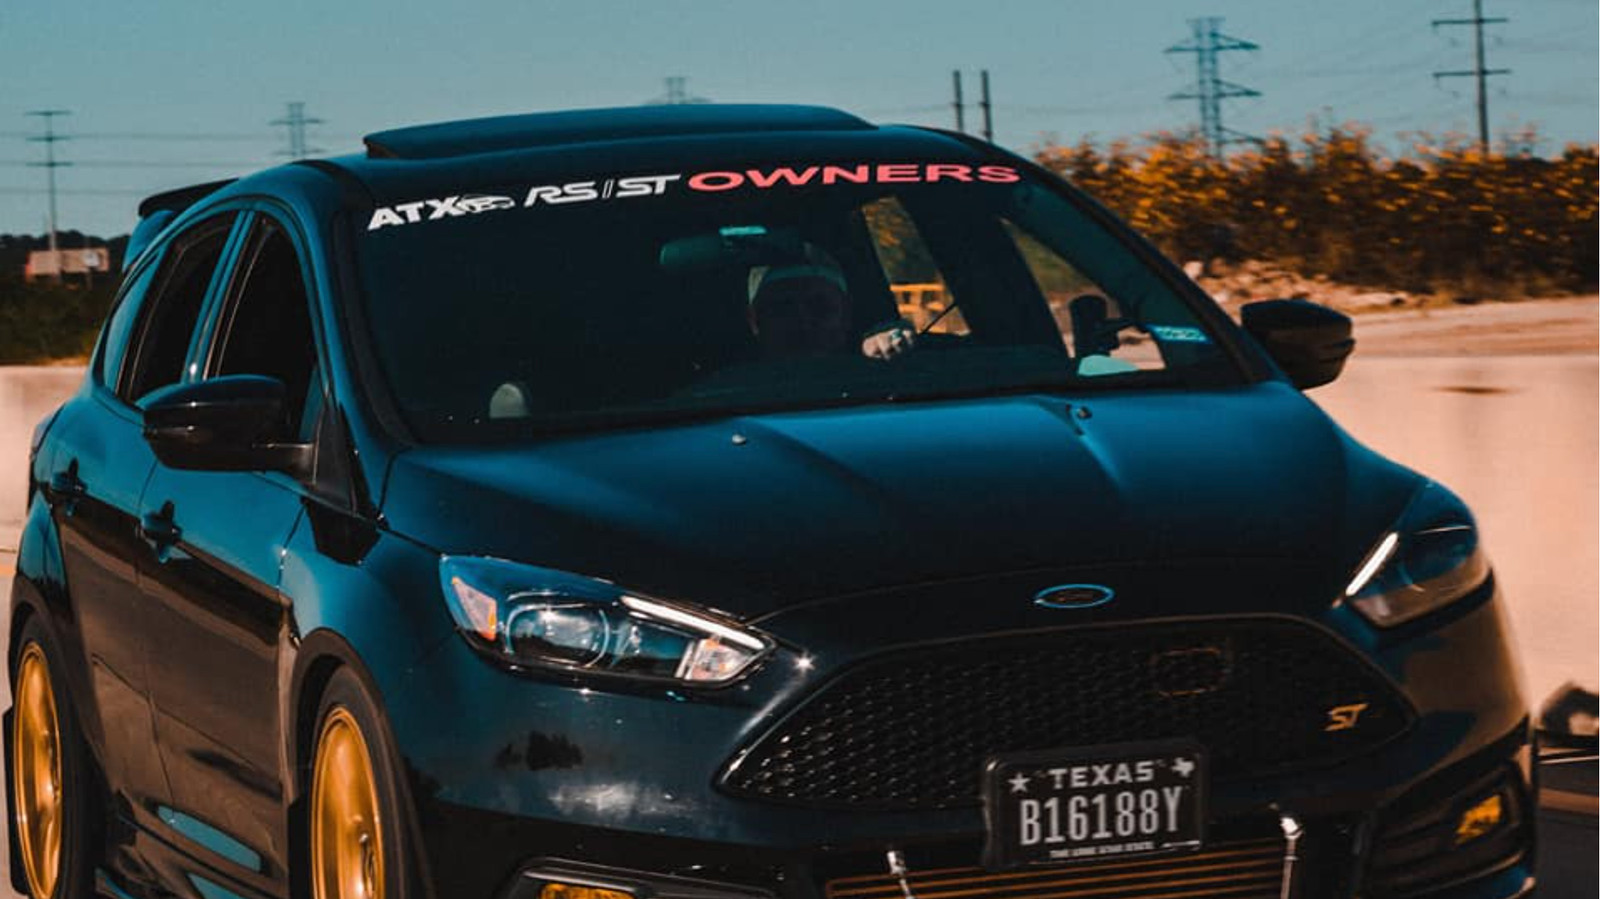 ATX RS/ST Owners Windshield Banner